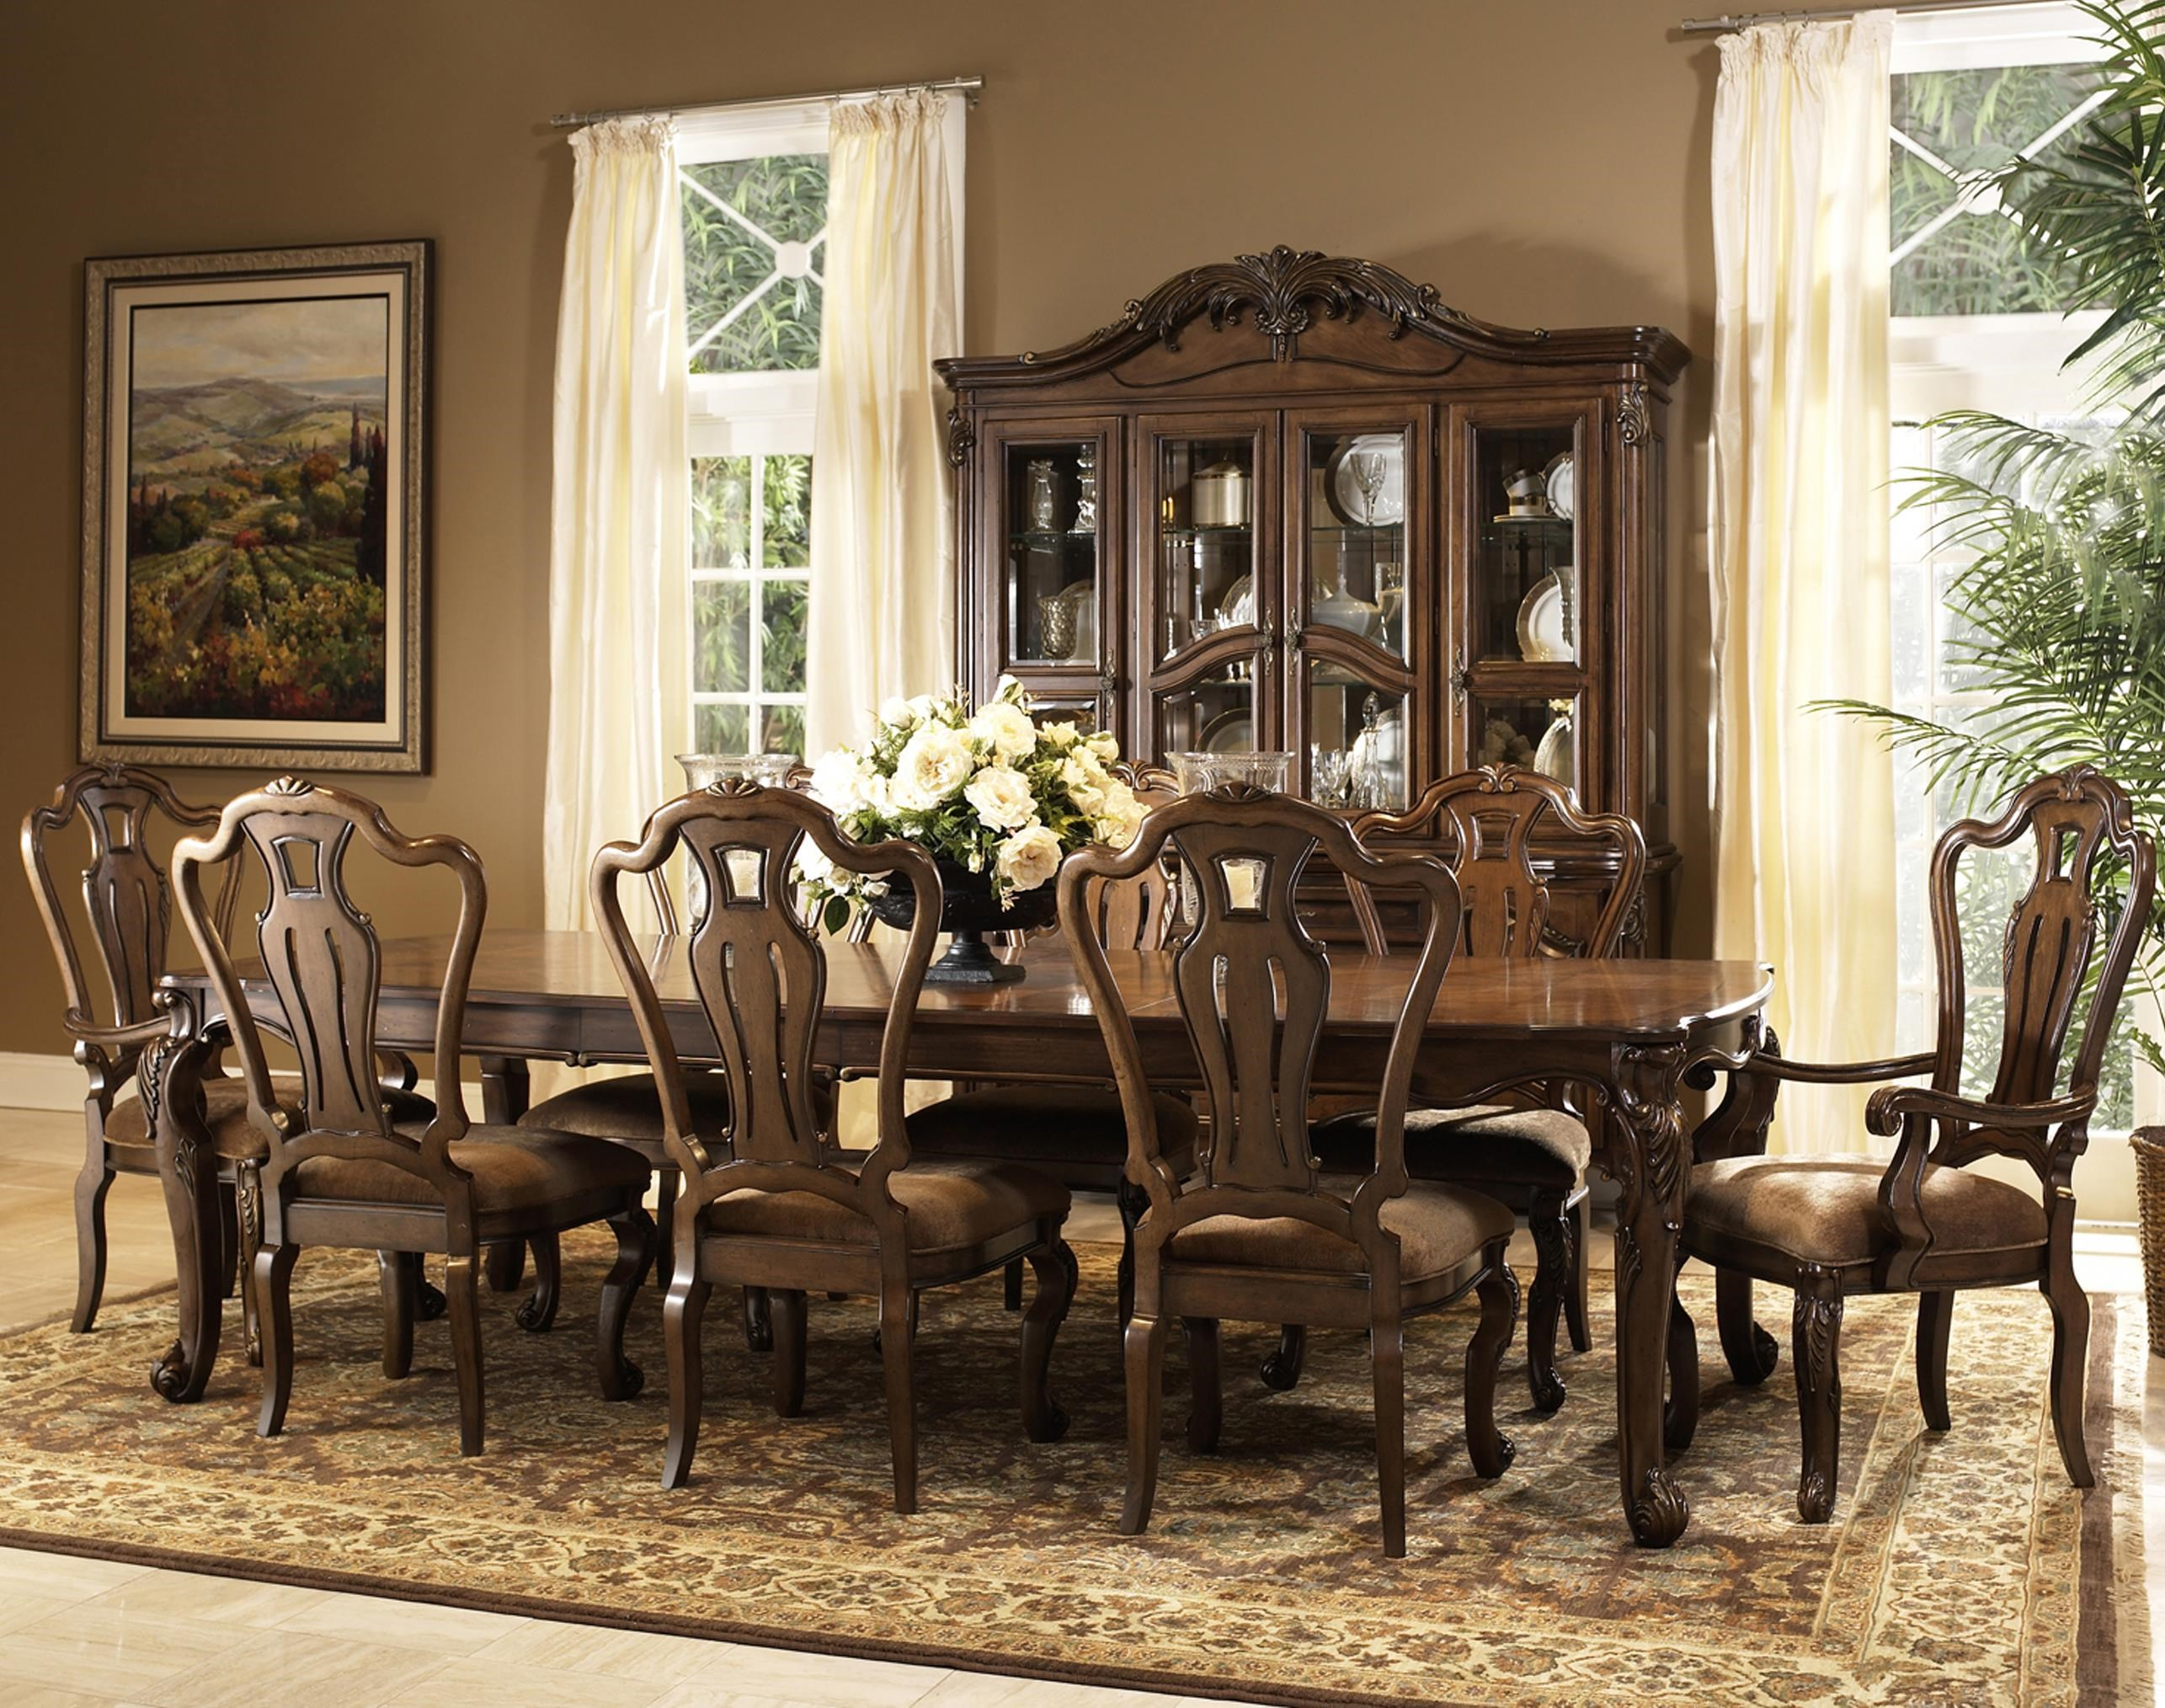 Amazing Rochelle 9 Piece Dining Table And Chair Set By Fairmont Designs